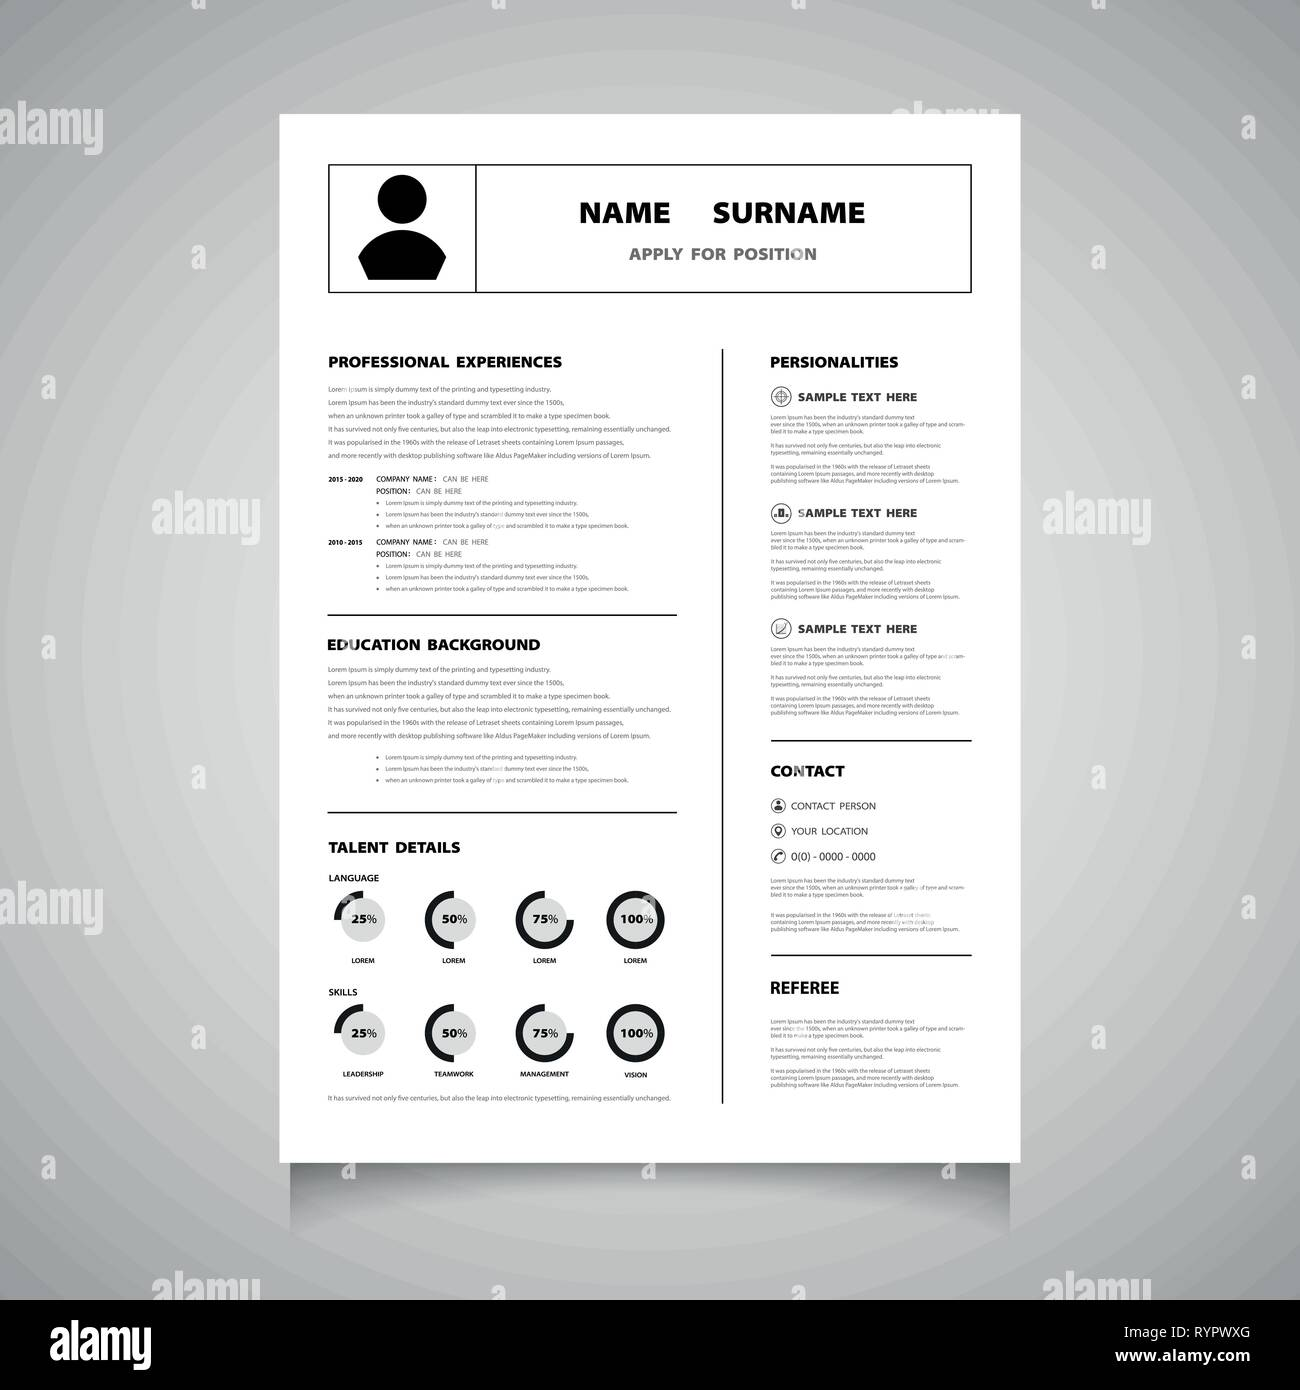 Modern resume cv form of black color vector. You can use for apply for a job that you love. illustration vector eps10 - Stock Image